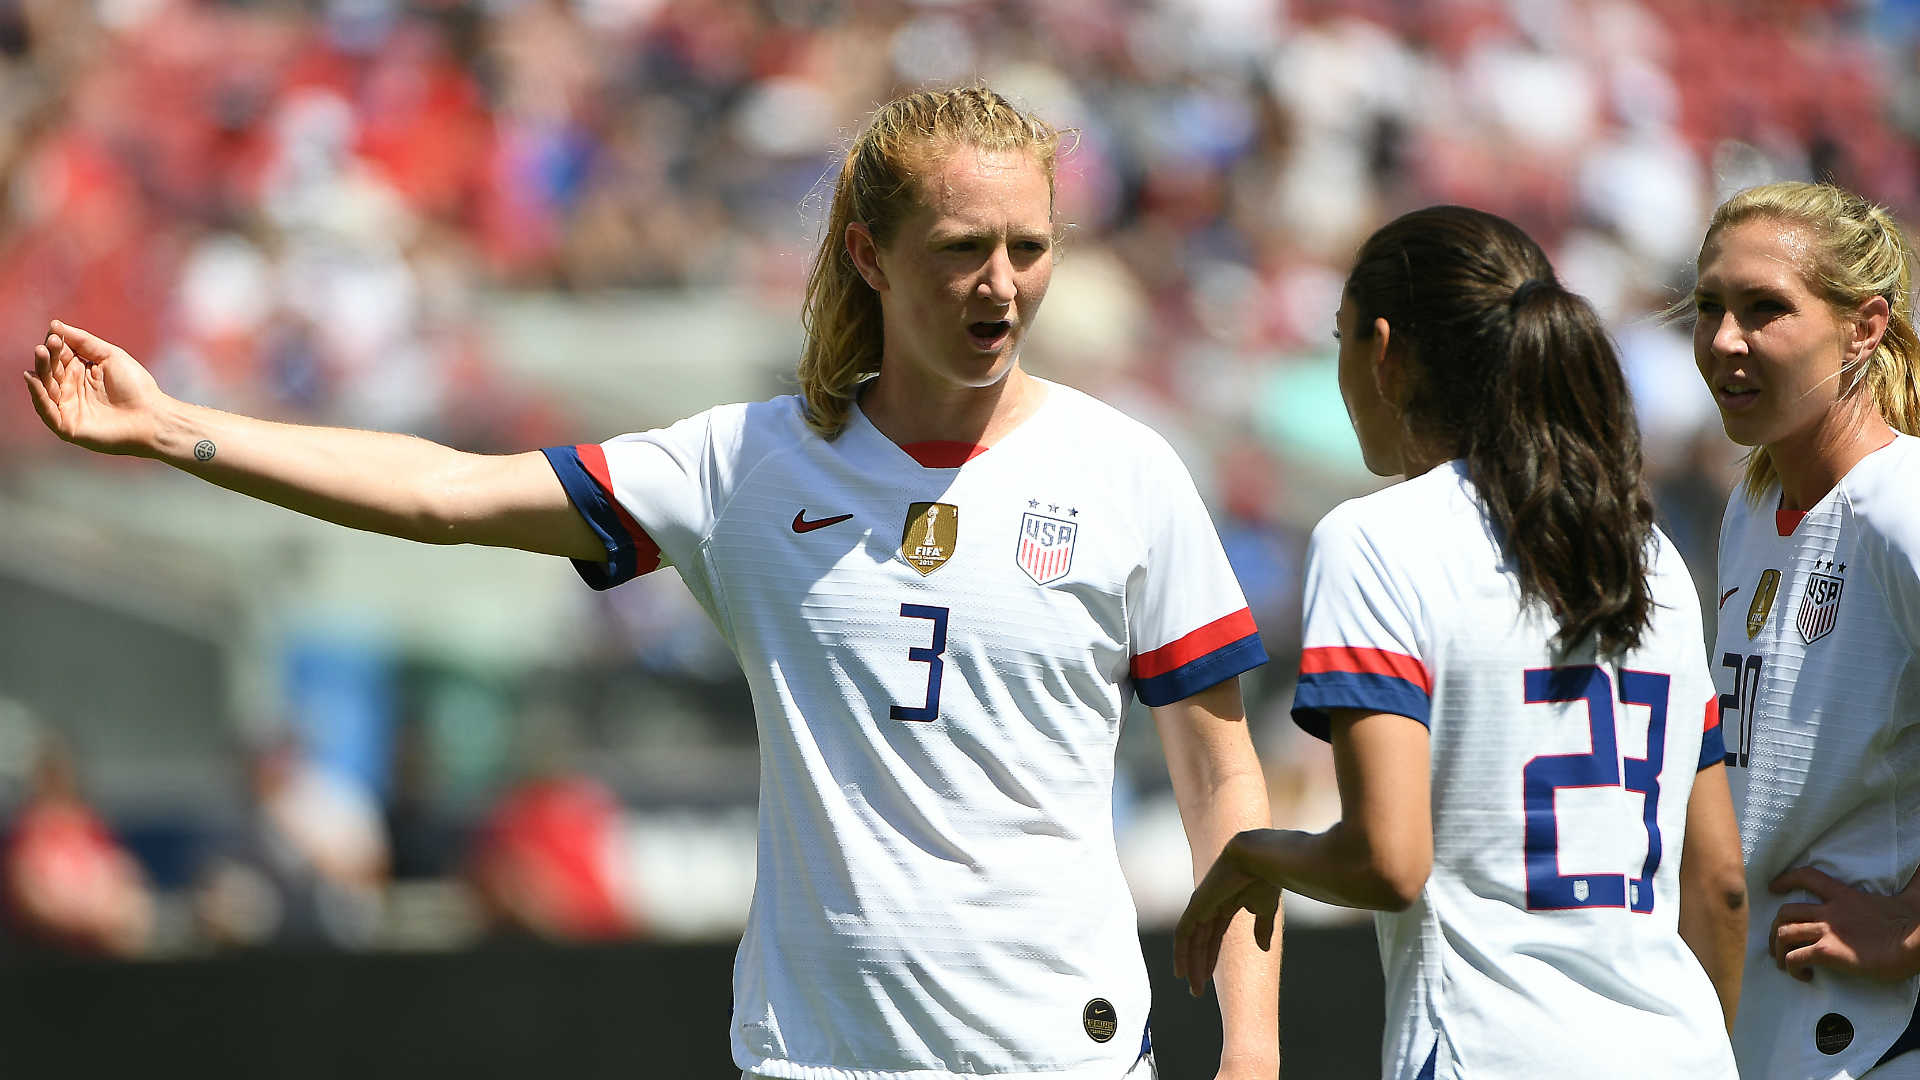 Women's World Cup 2019: USWNT opens final prep by dominating South Africa